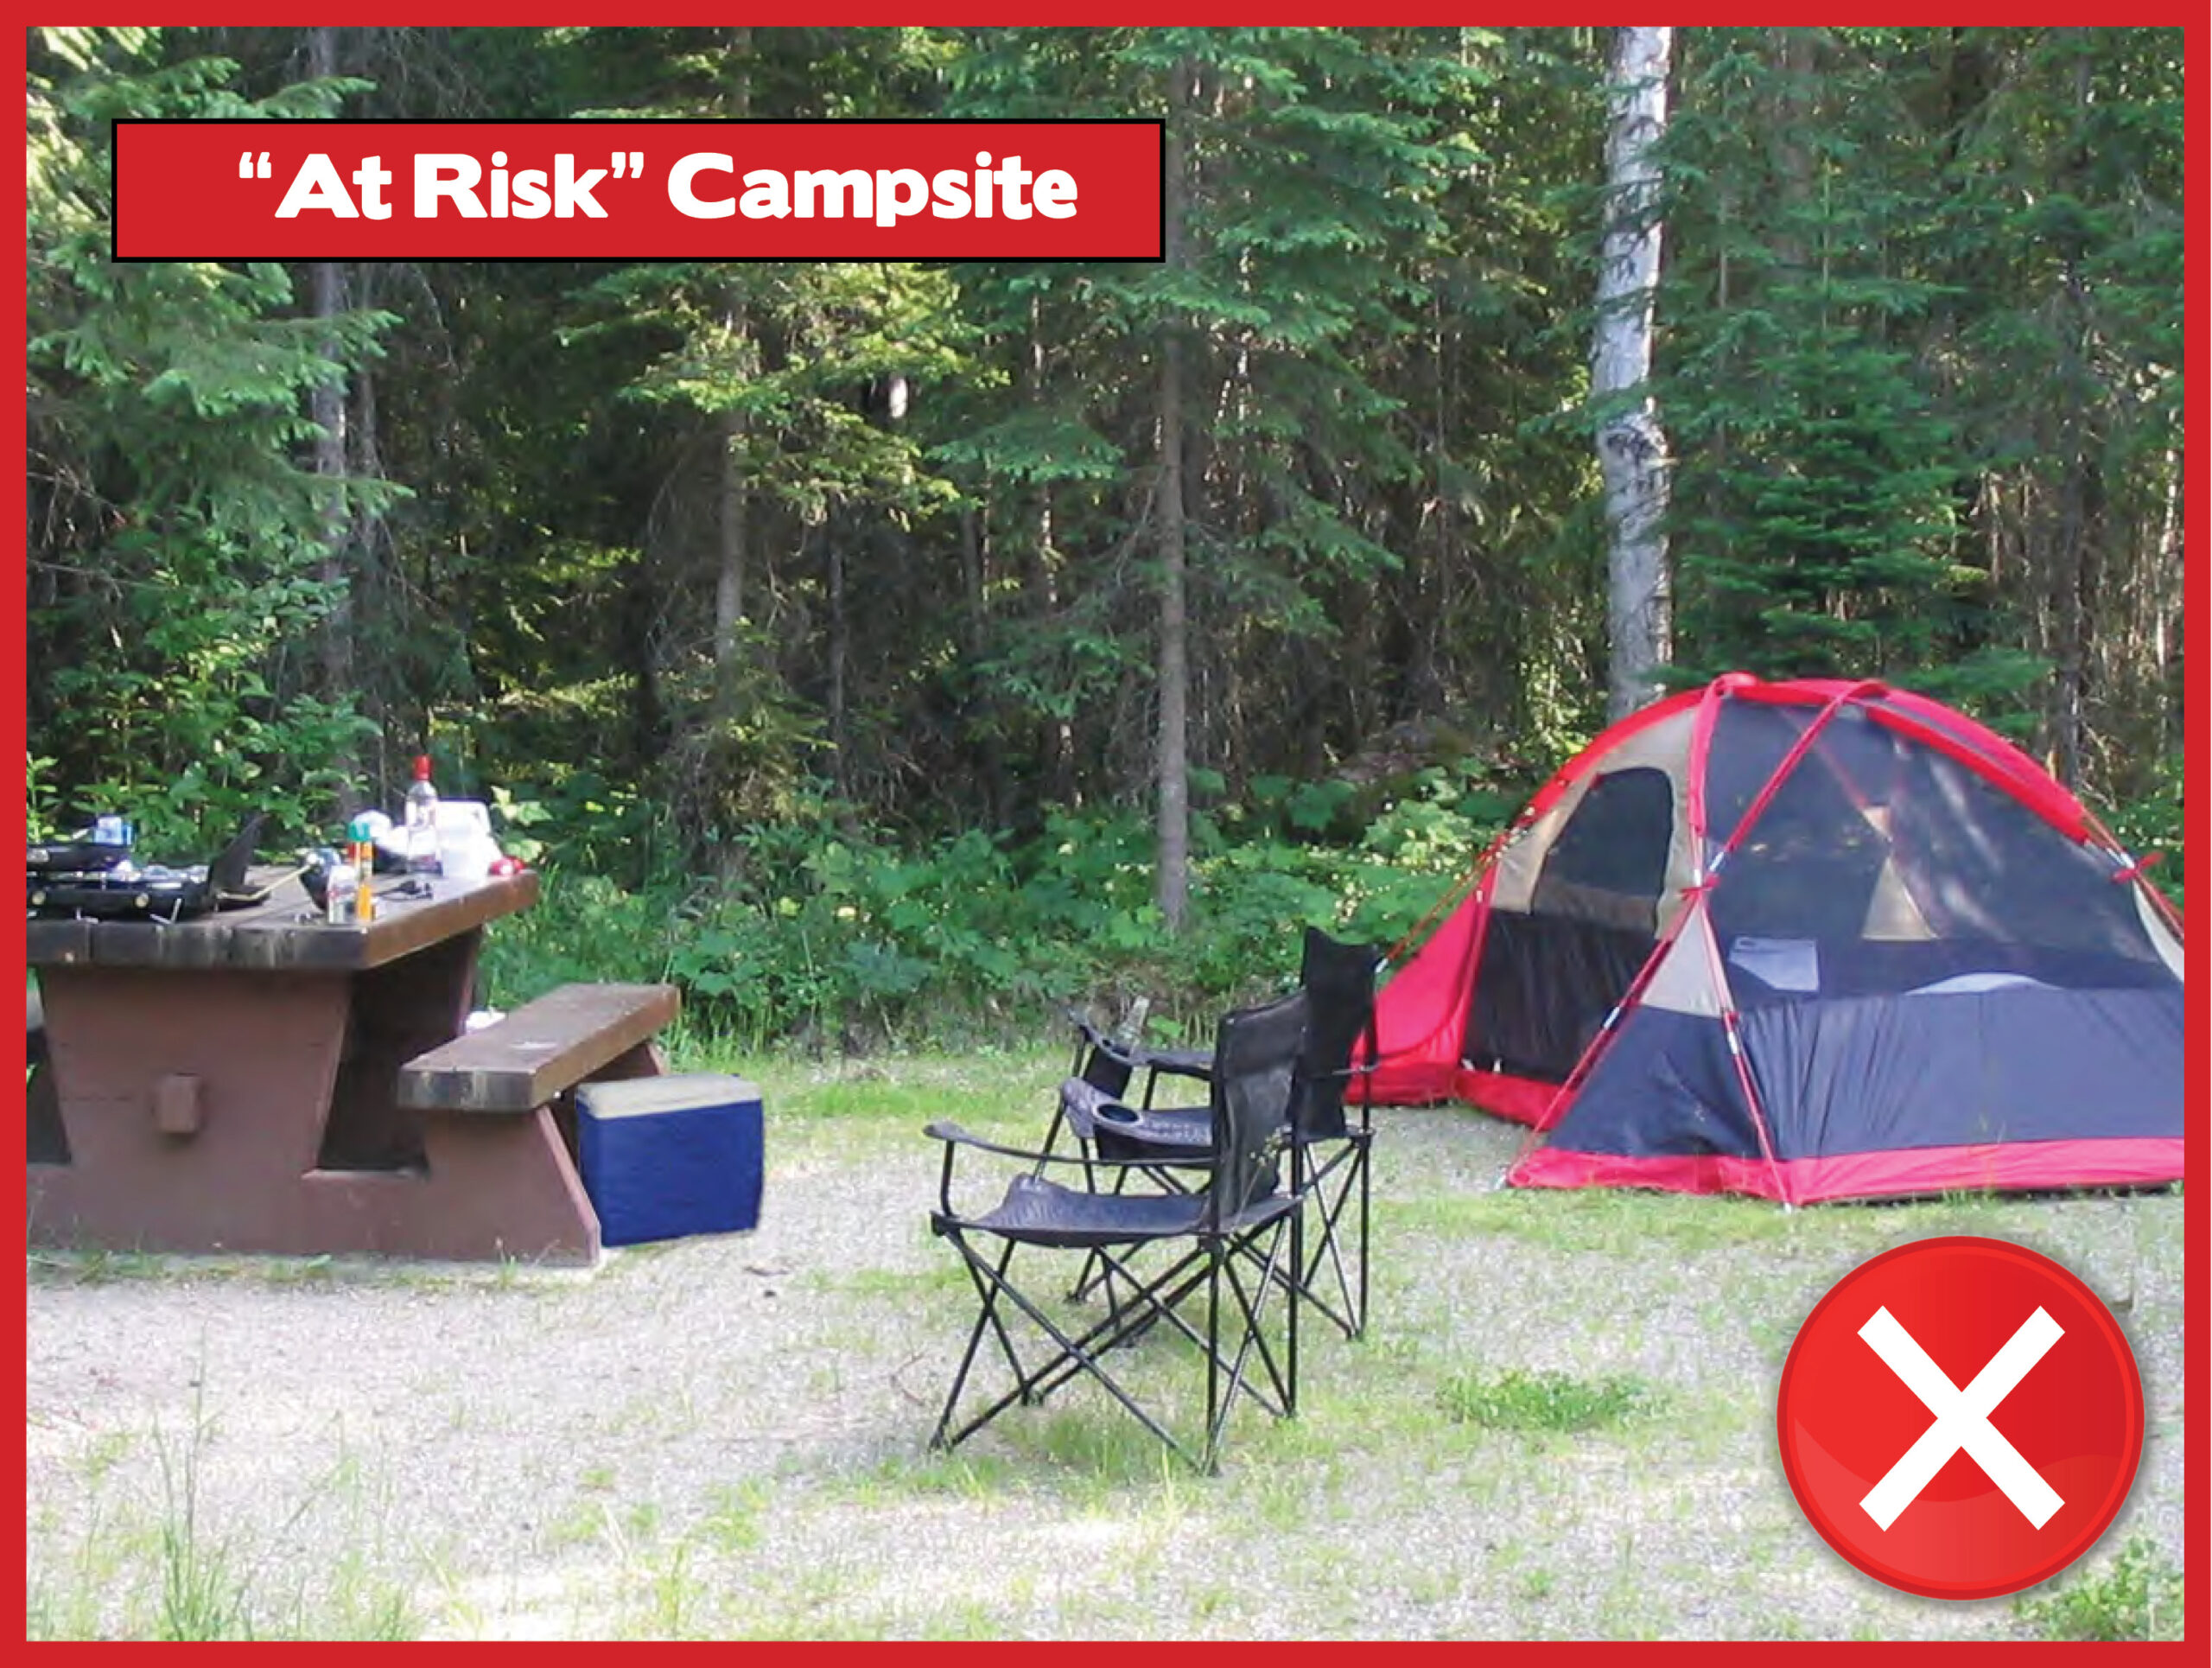 At Risk Campsite only with X